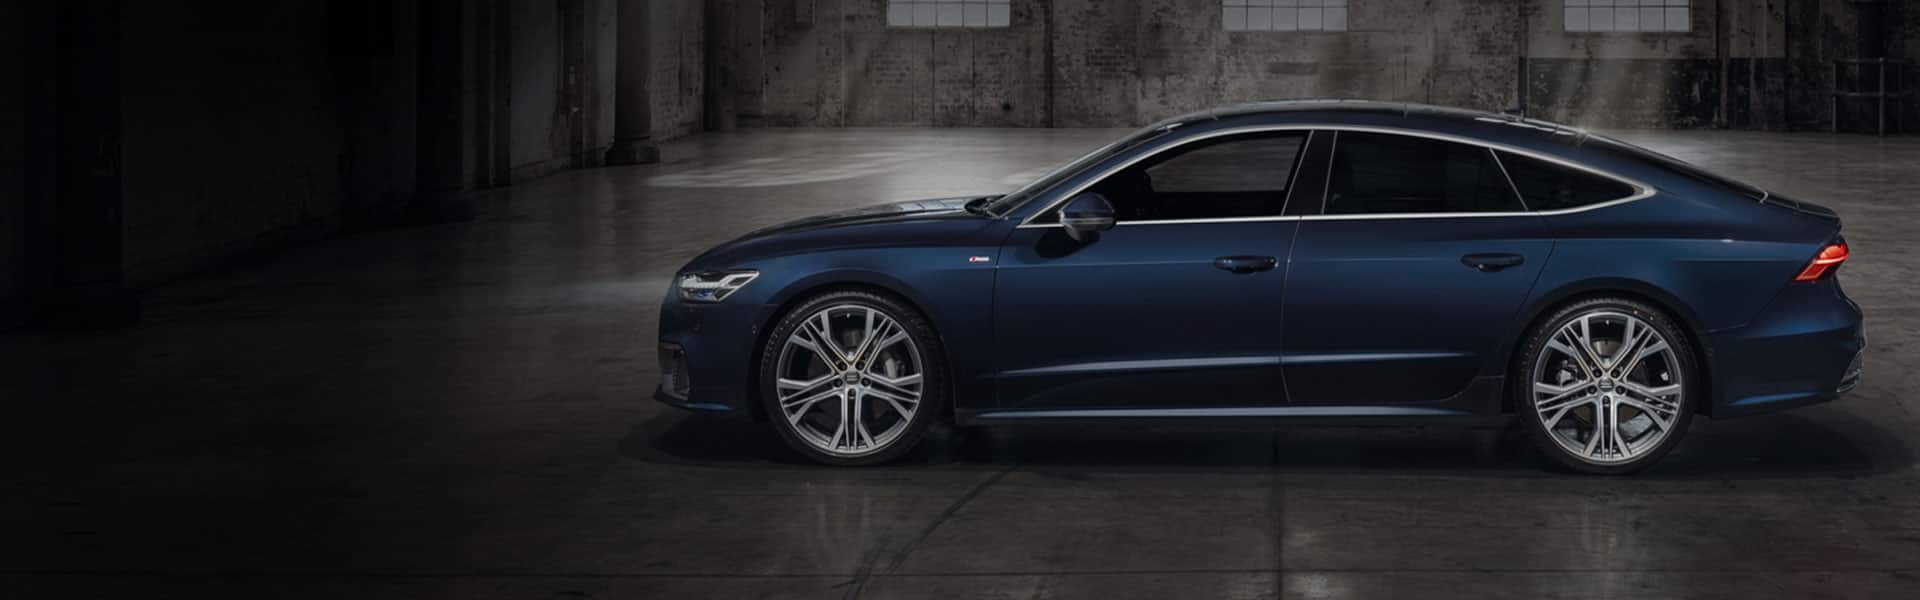 The new Audi A7 Sportback.